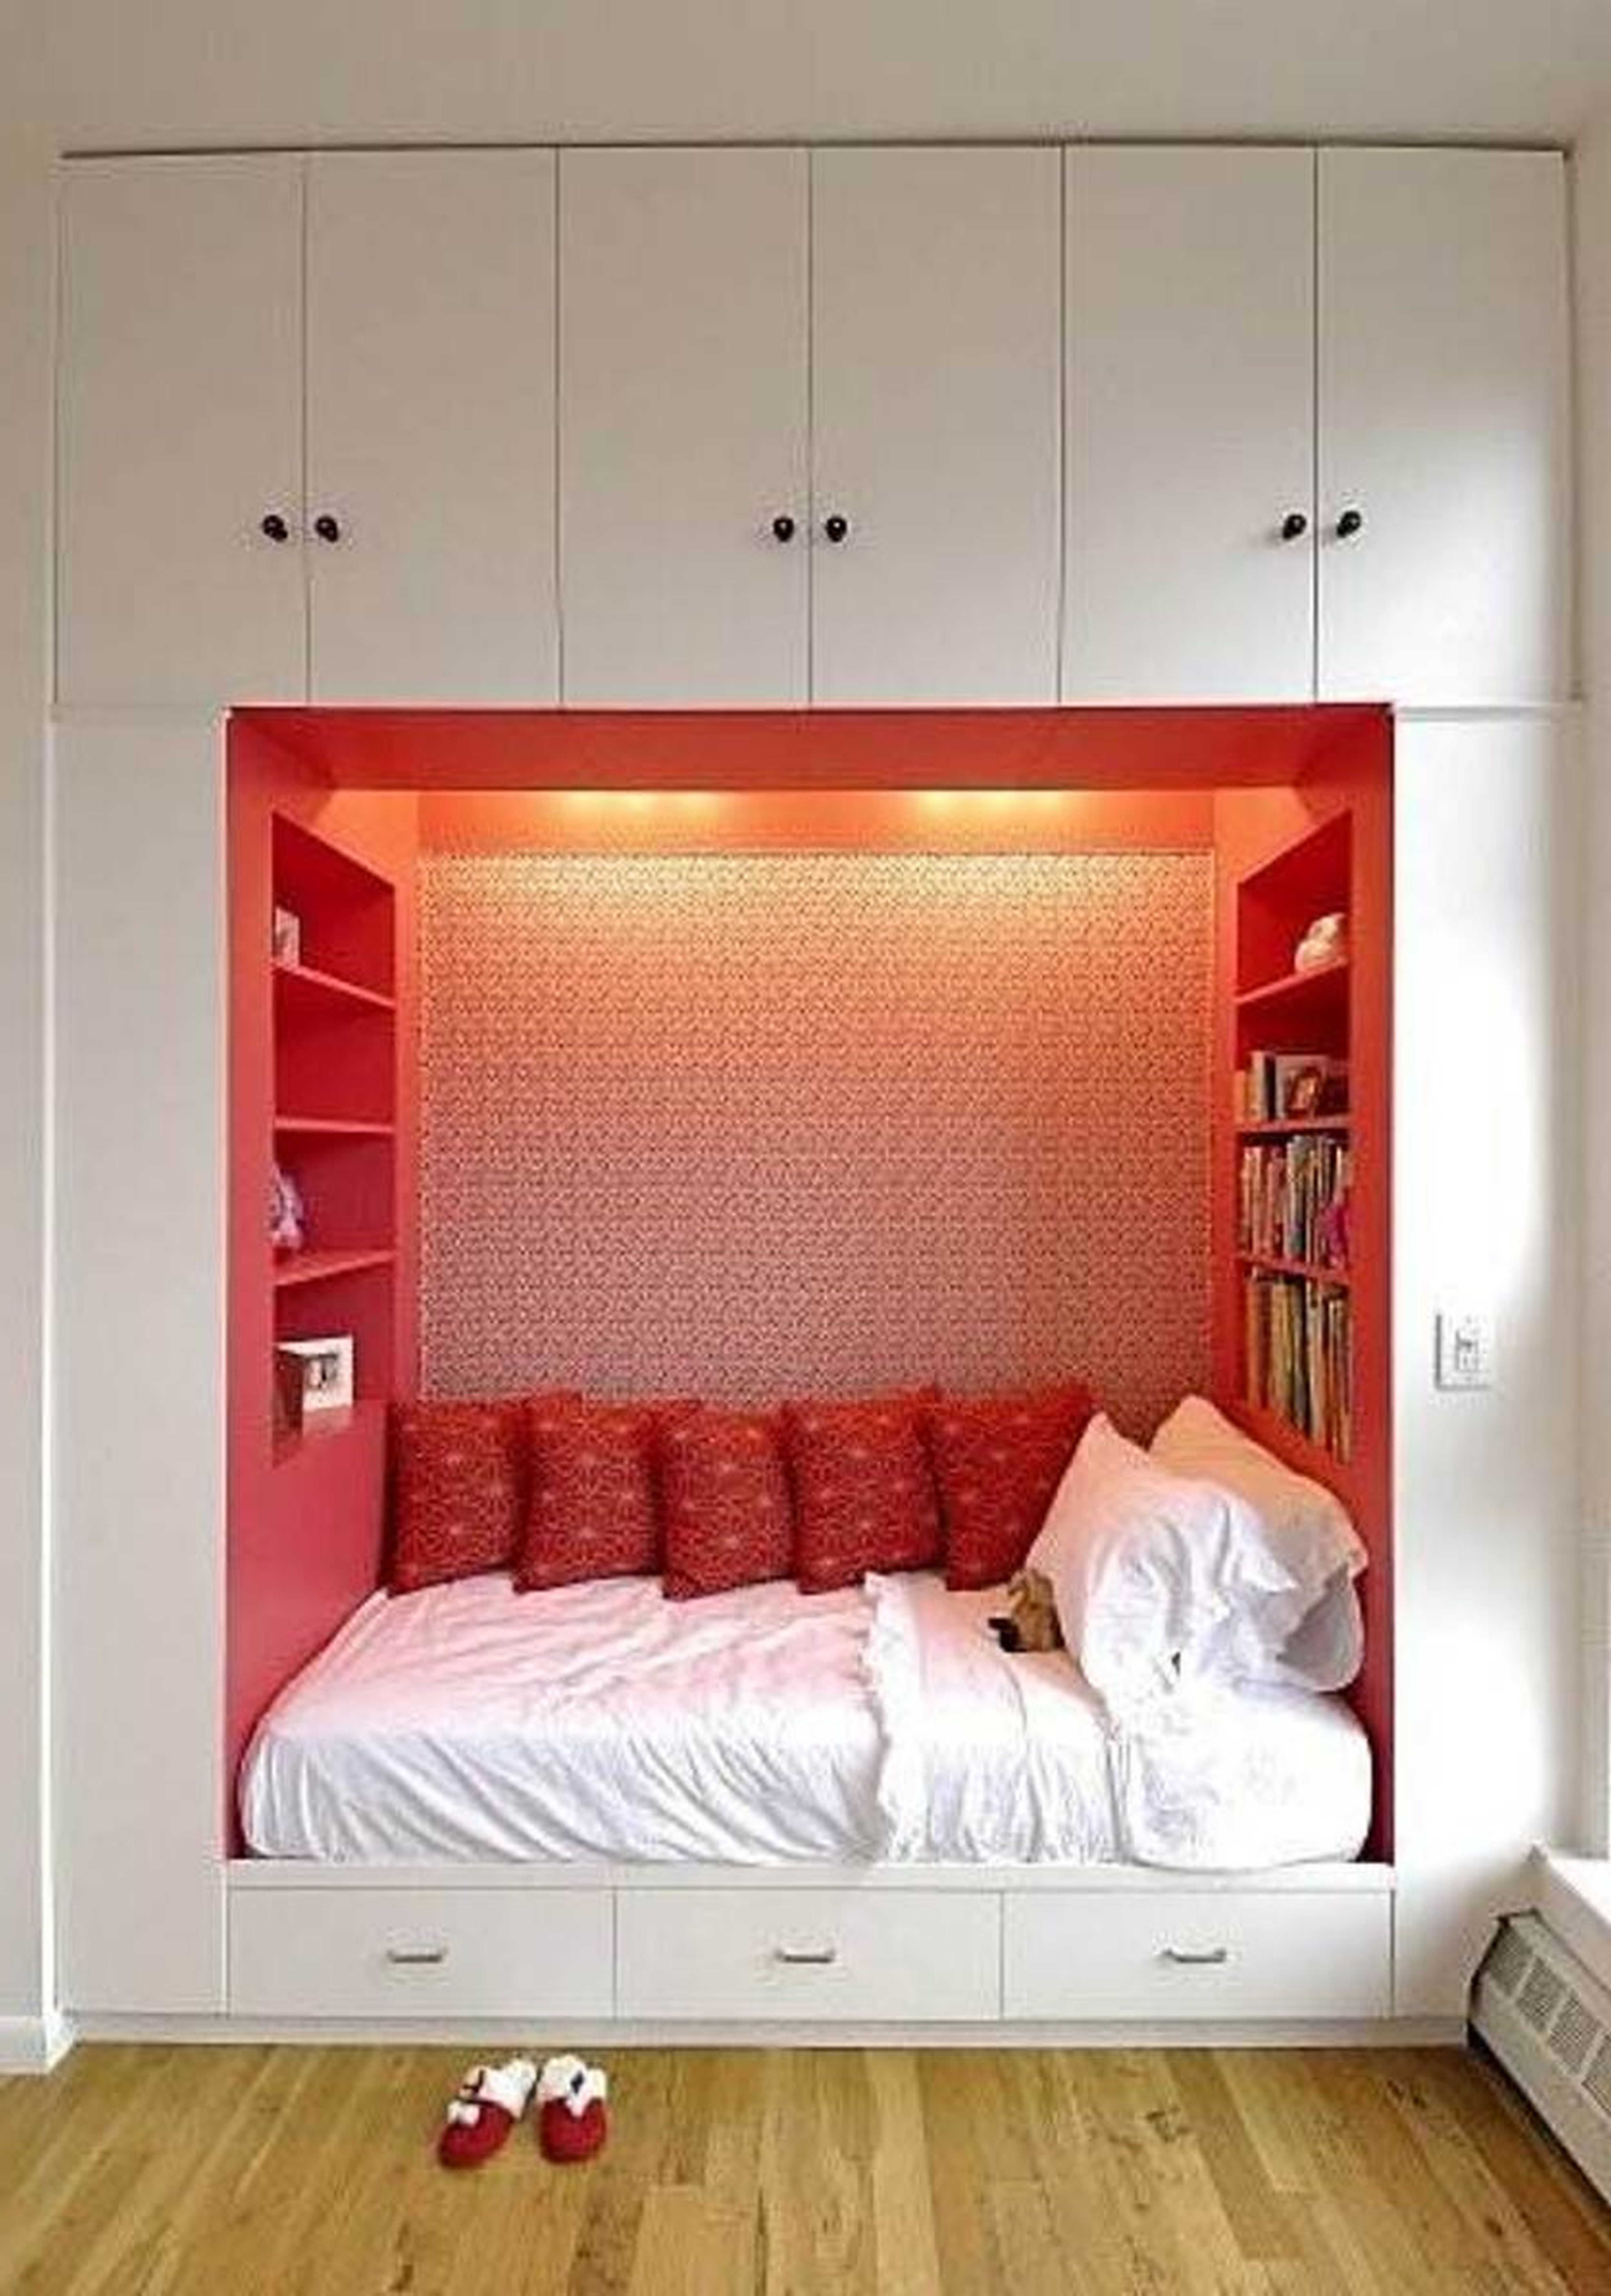 Bedroom designs for small spaces for couple apartment pinterest